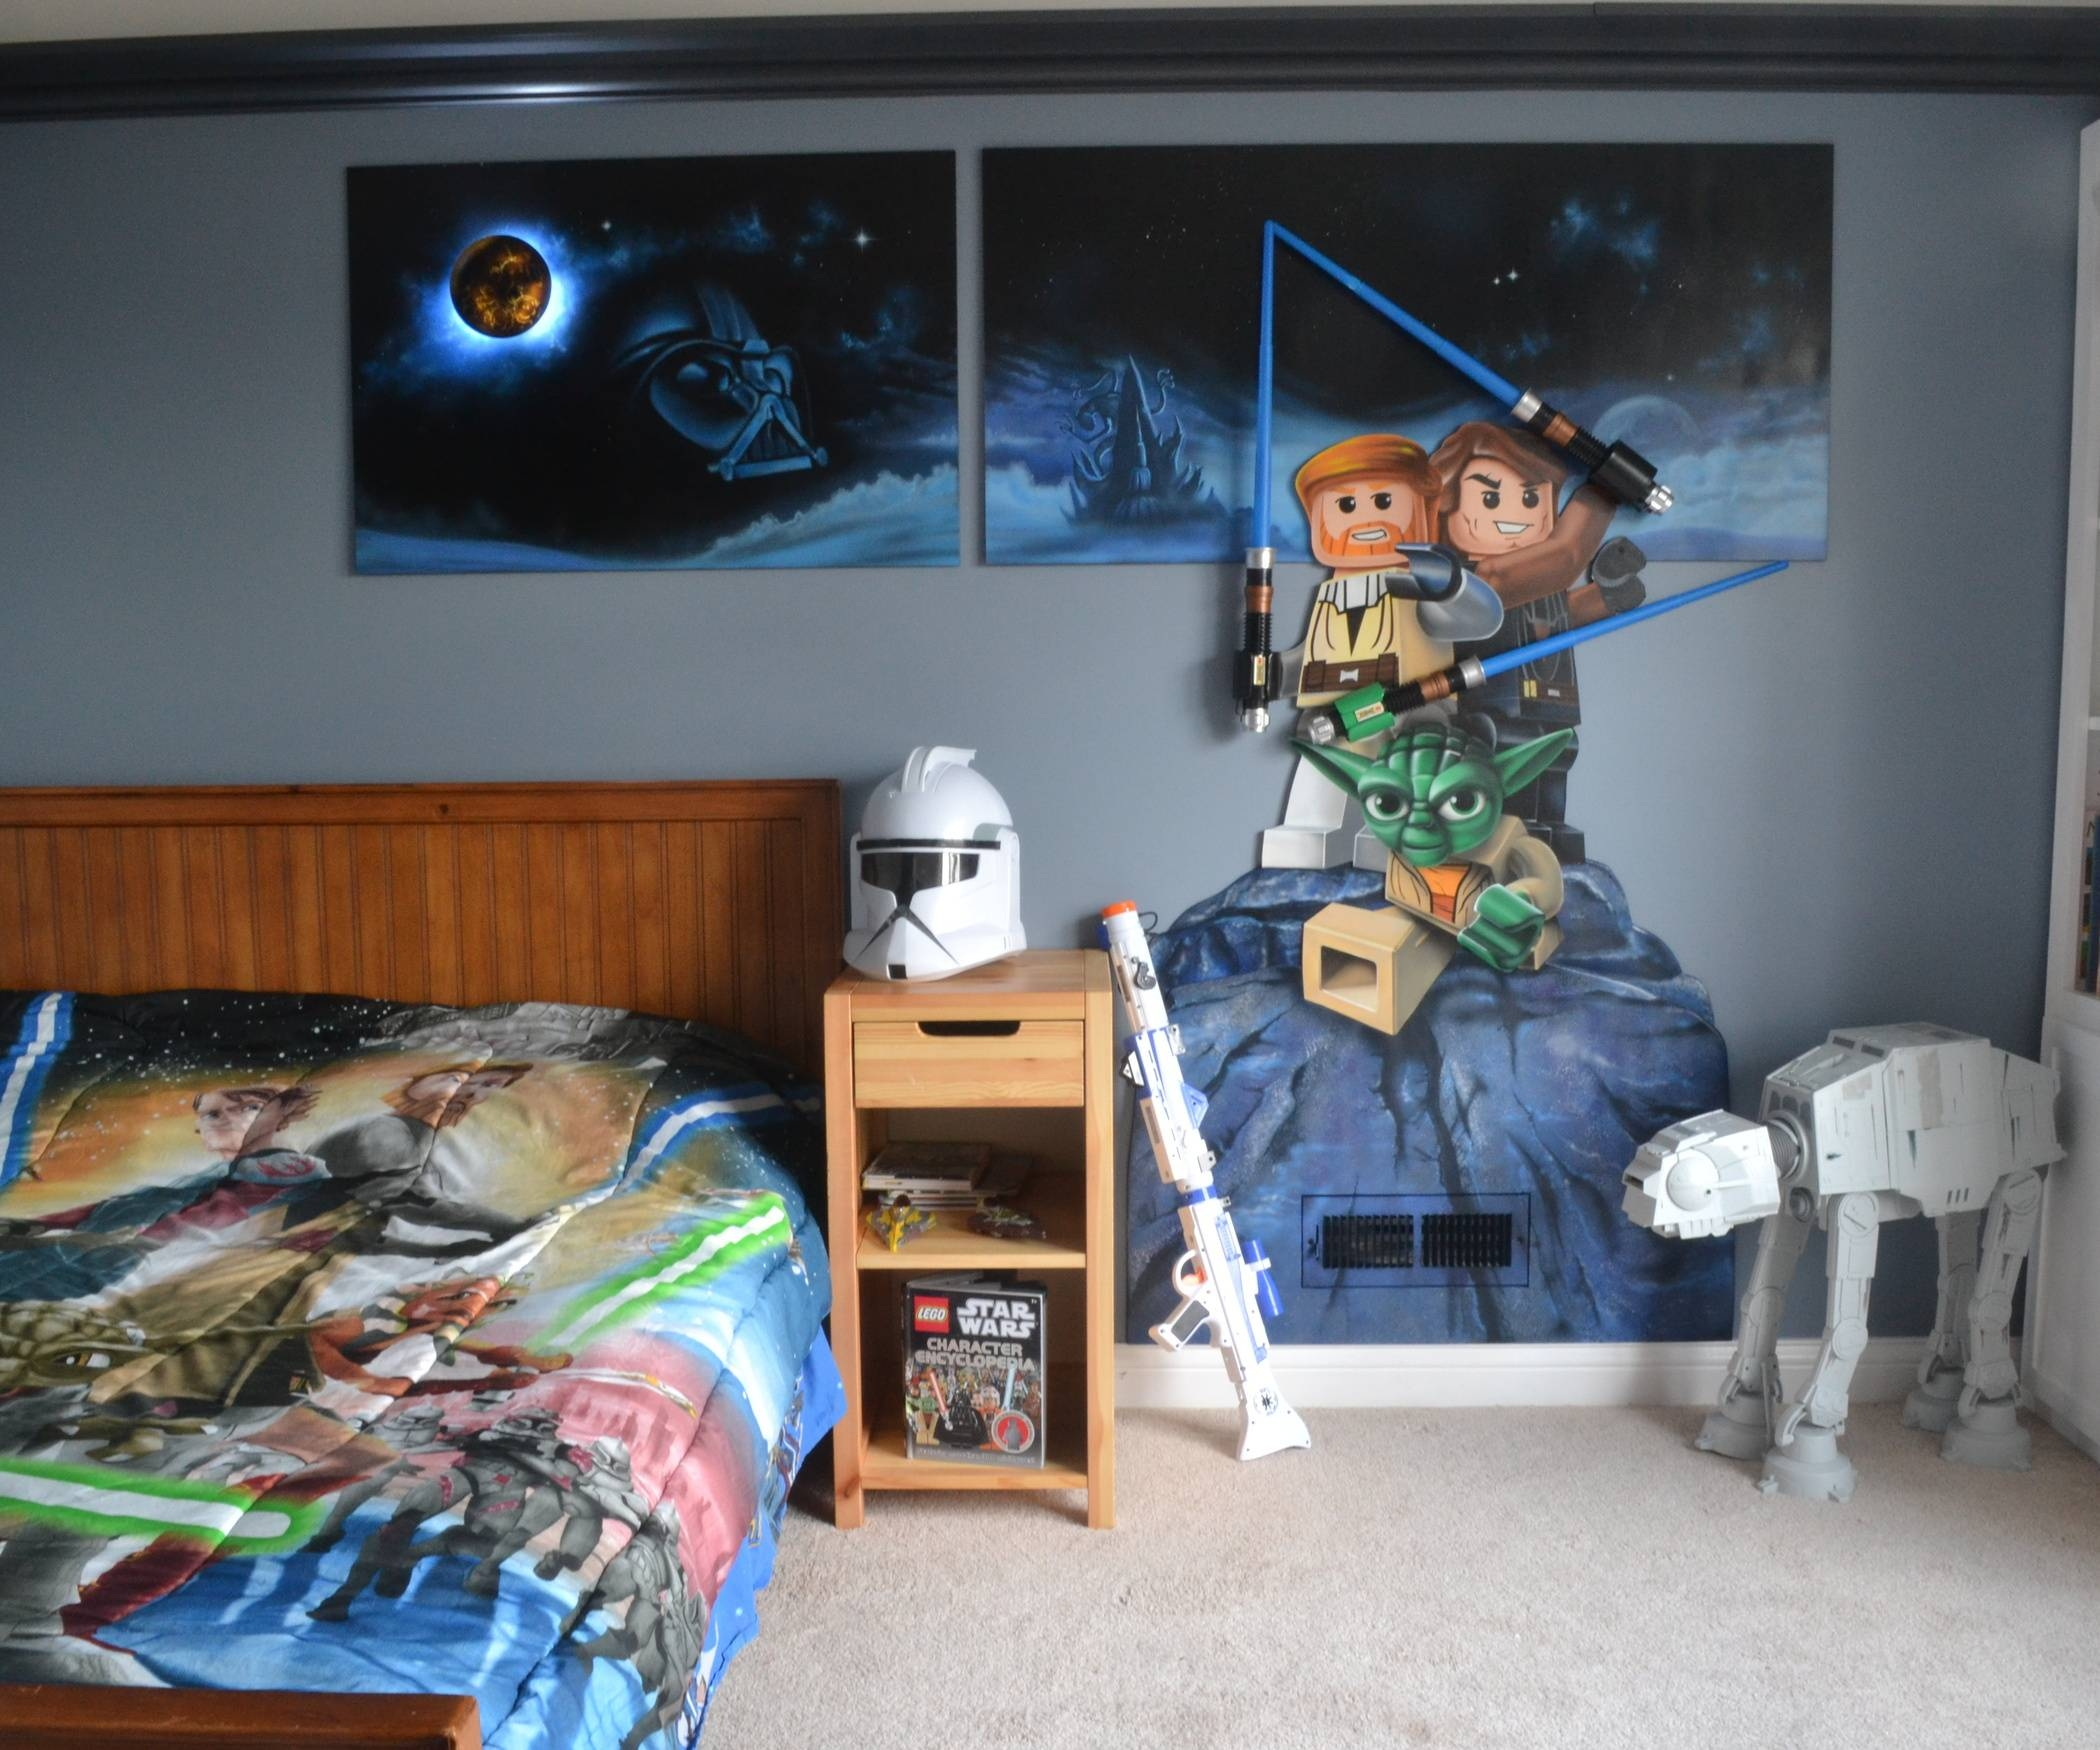 Lego Star Wars Mural Throughout Most Recent Lego Star Wars Wall Art (View 2 of 20)